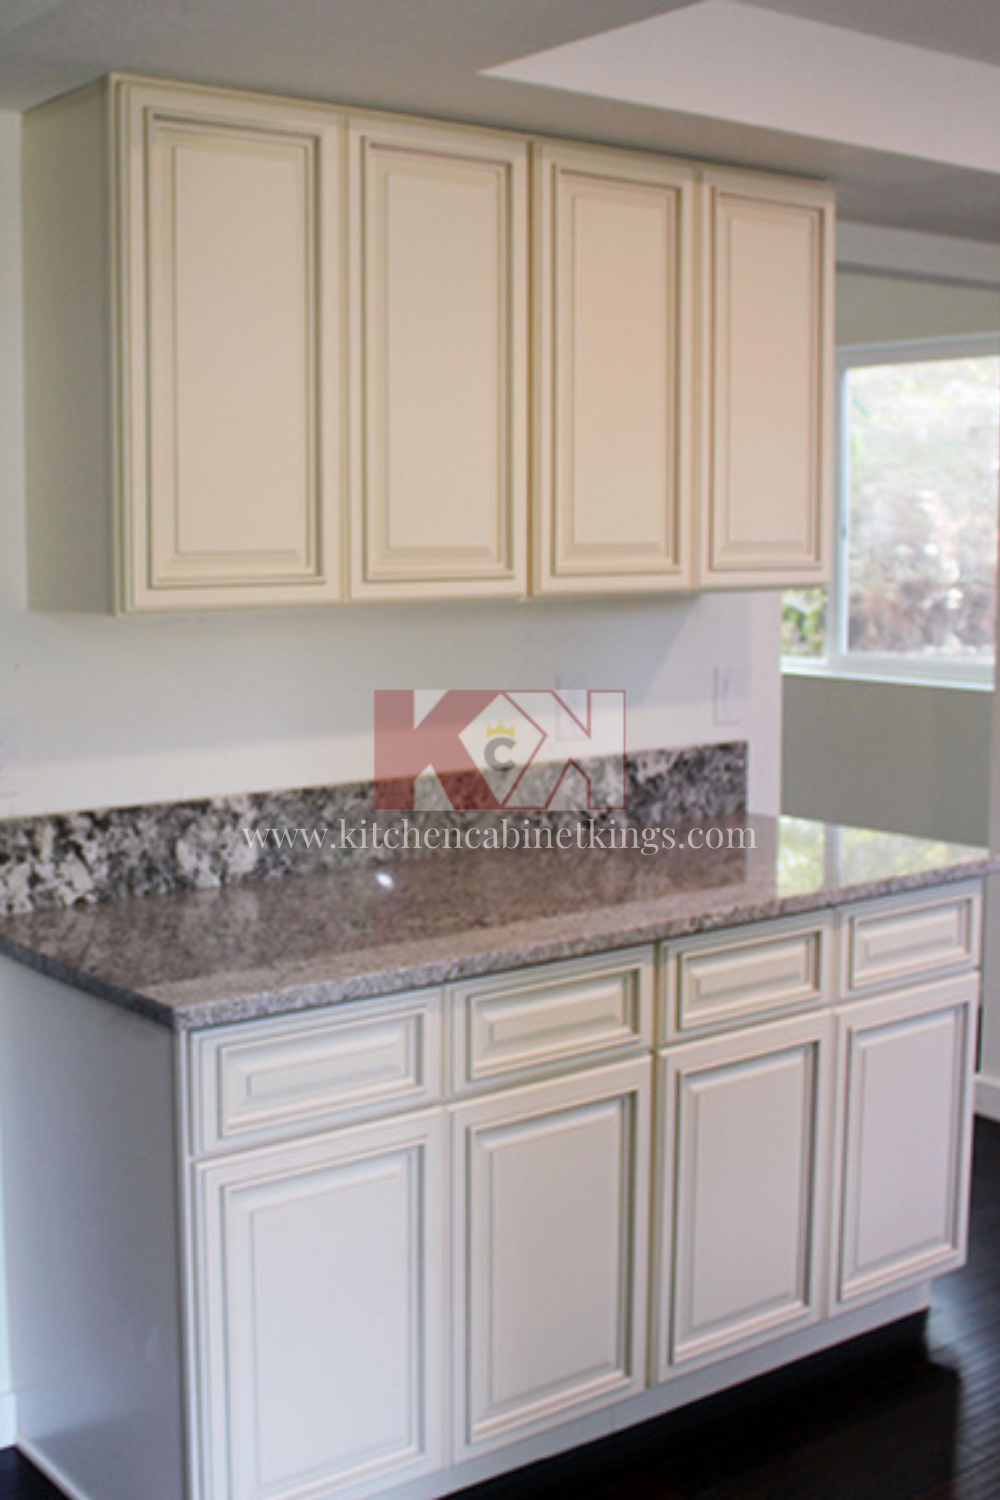 Buy Pre Assembled Pearl Kitchen Cabinets Online In 2020 Assembled Kitchen Cabinets Online Kitchen Cabinets Kitchen